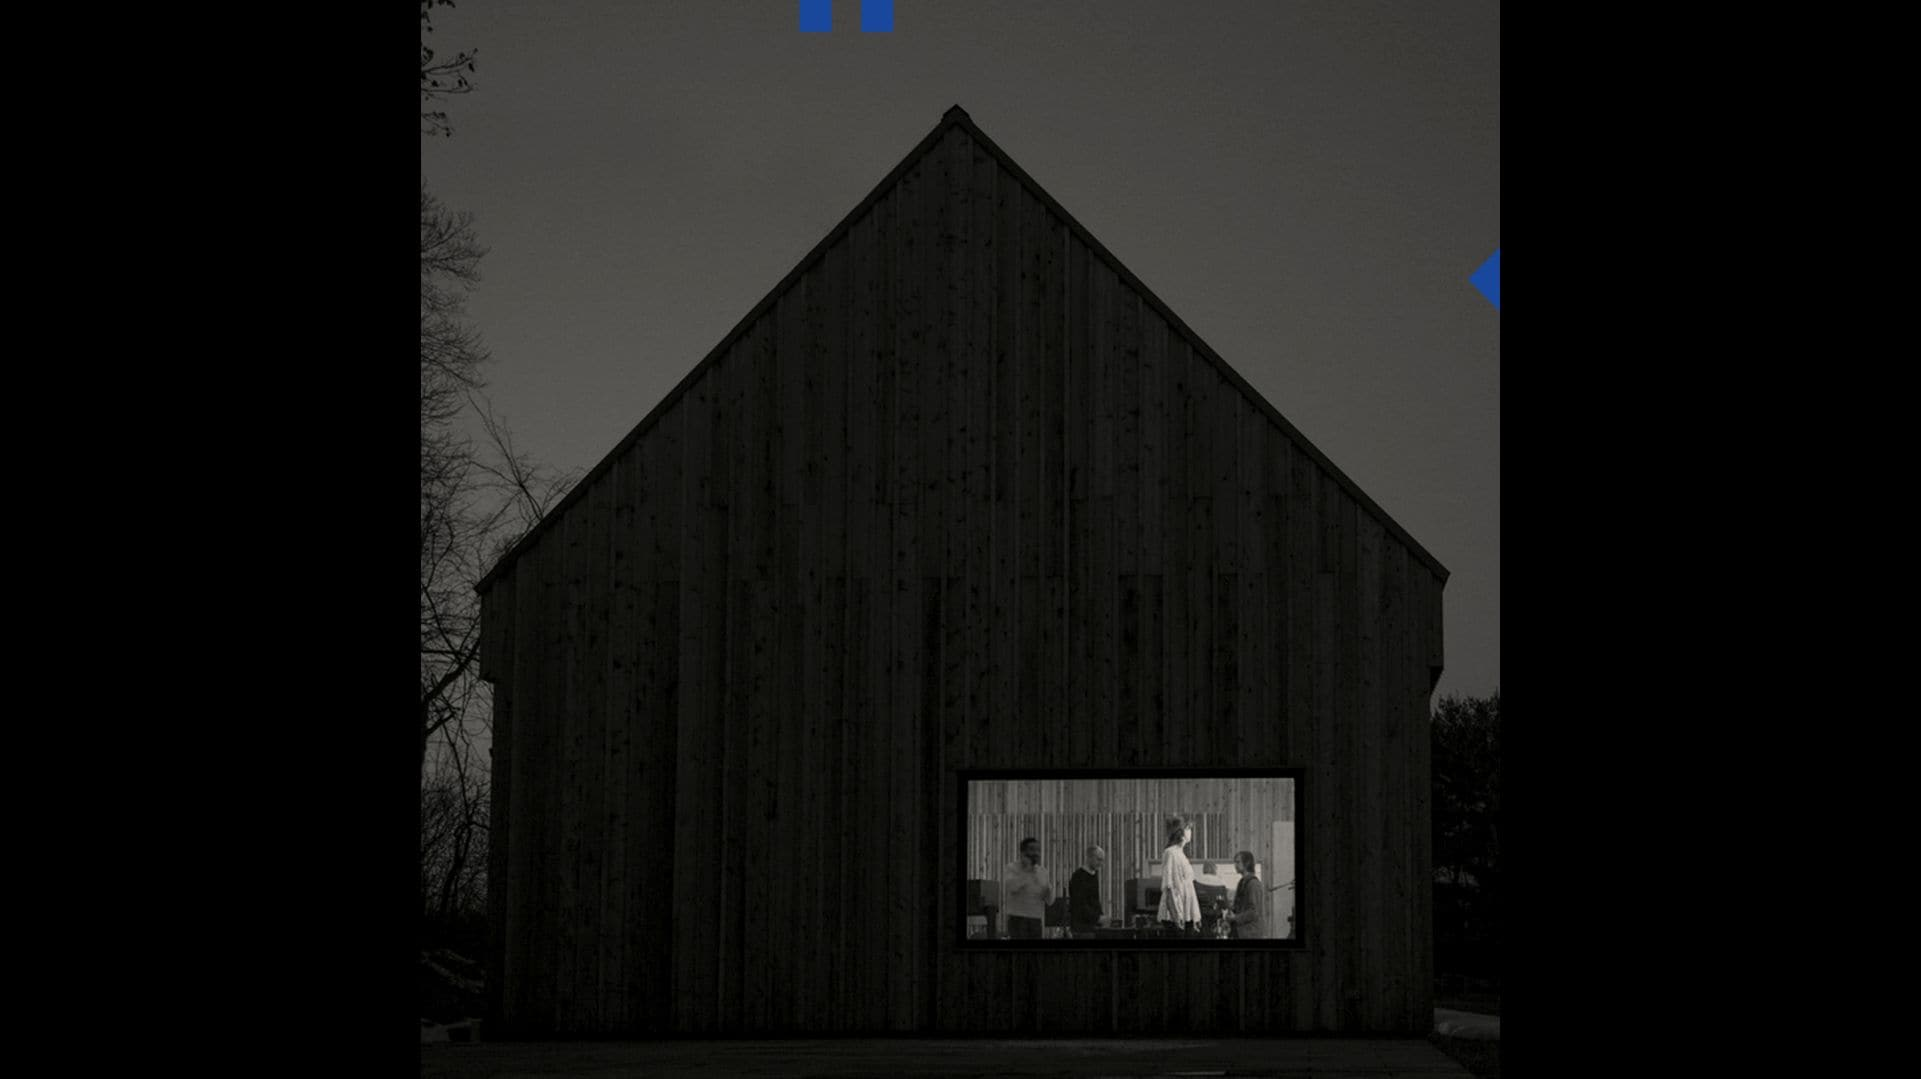 13 The National - Sleep Well Beast